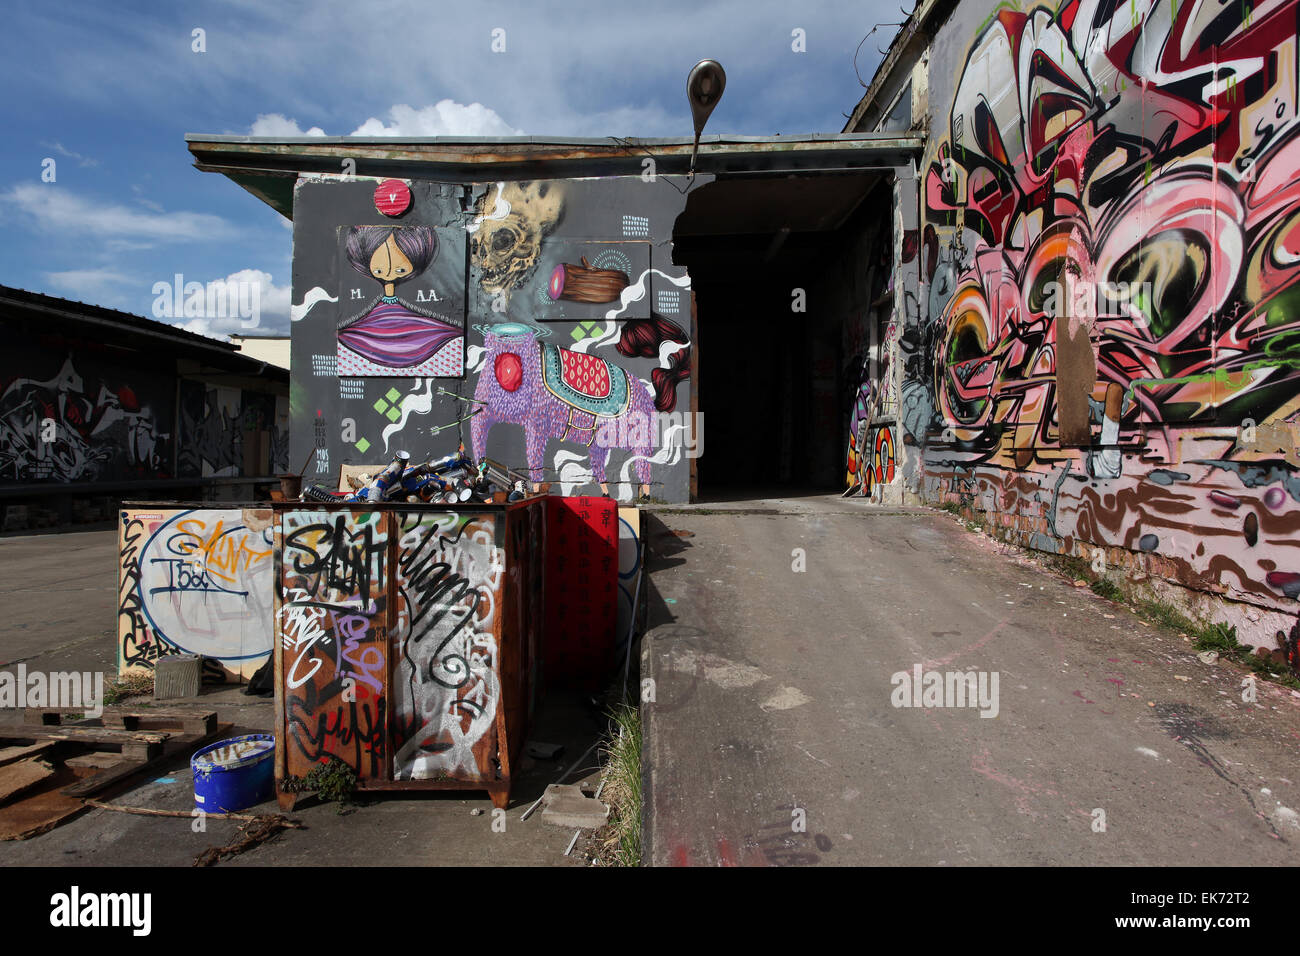 The Aerosol-Arena, Germany's largest Hall of Fame,located in an old industrial area of the former GDR. Magdeburg, - Stock Image